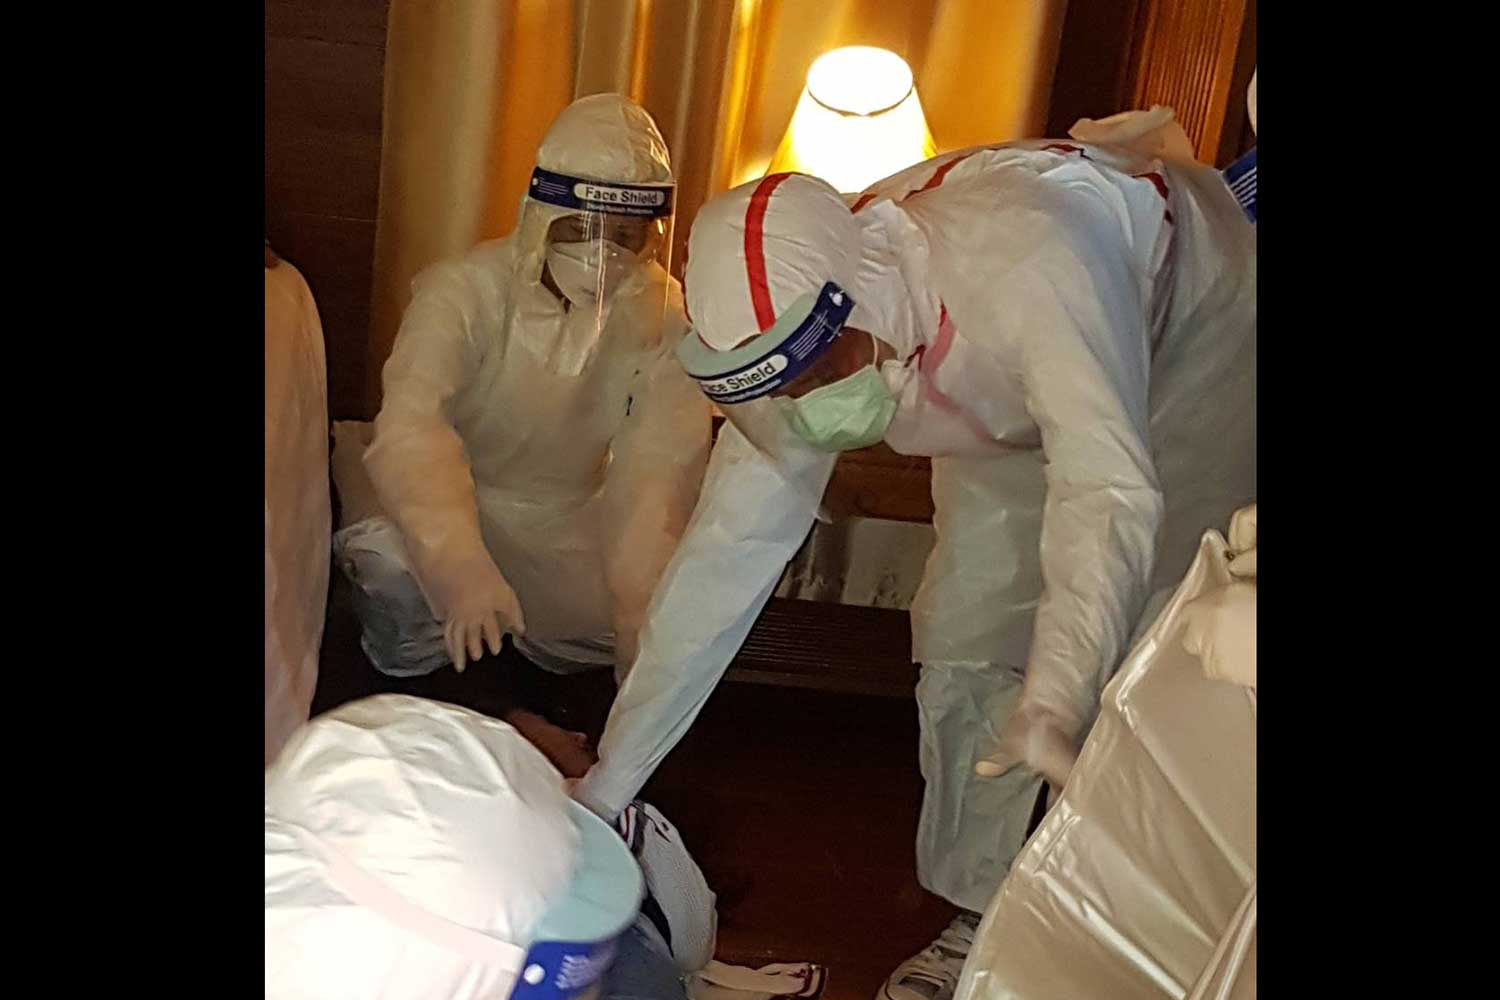 Forensic officials collect evidence from the resort room in Mae Rim district of Chiang Mai province where a 32-year-old Chinese woman was found dead on Jan 29. (Photo by Panumet Tanraksa)